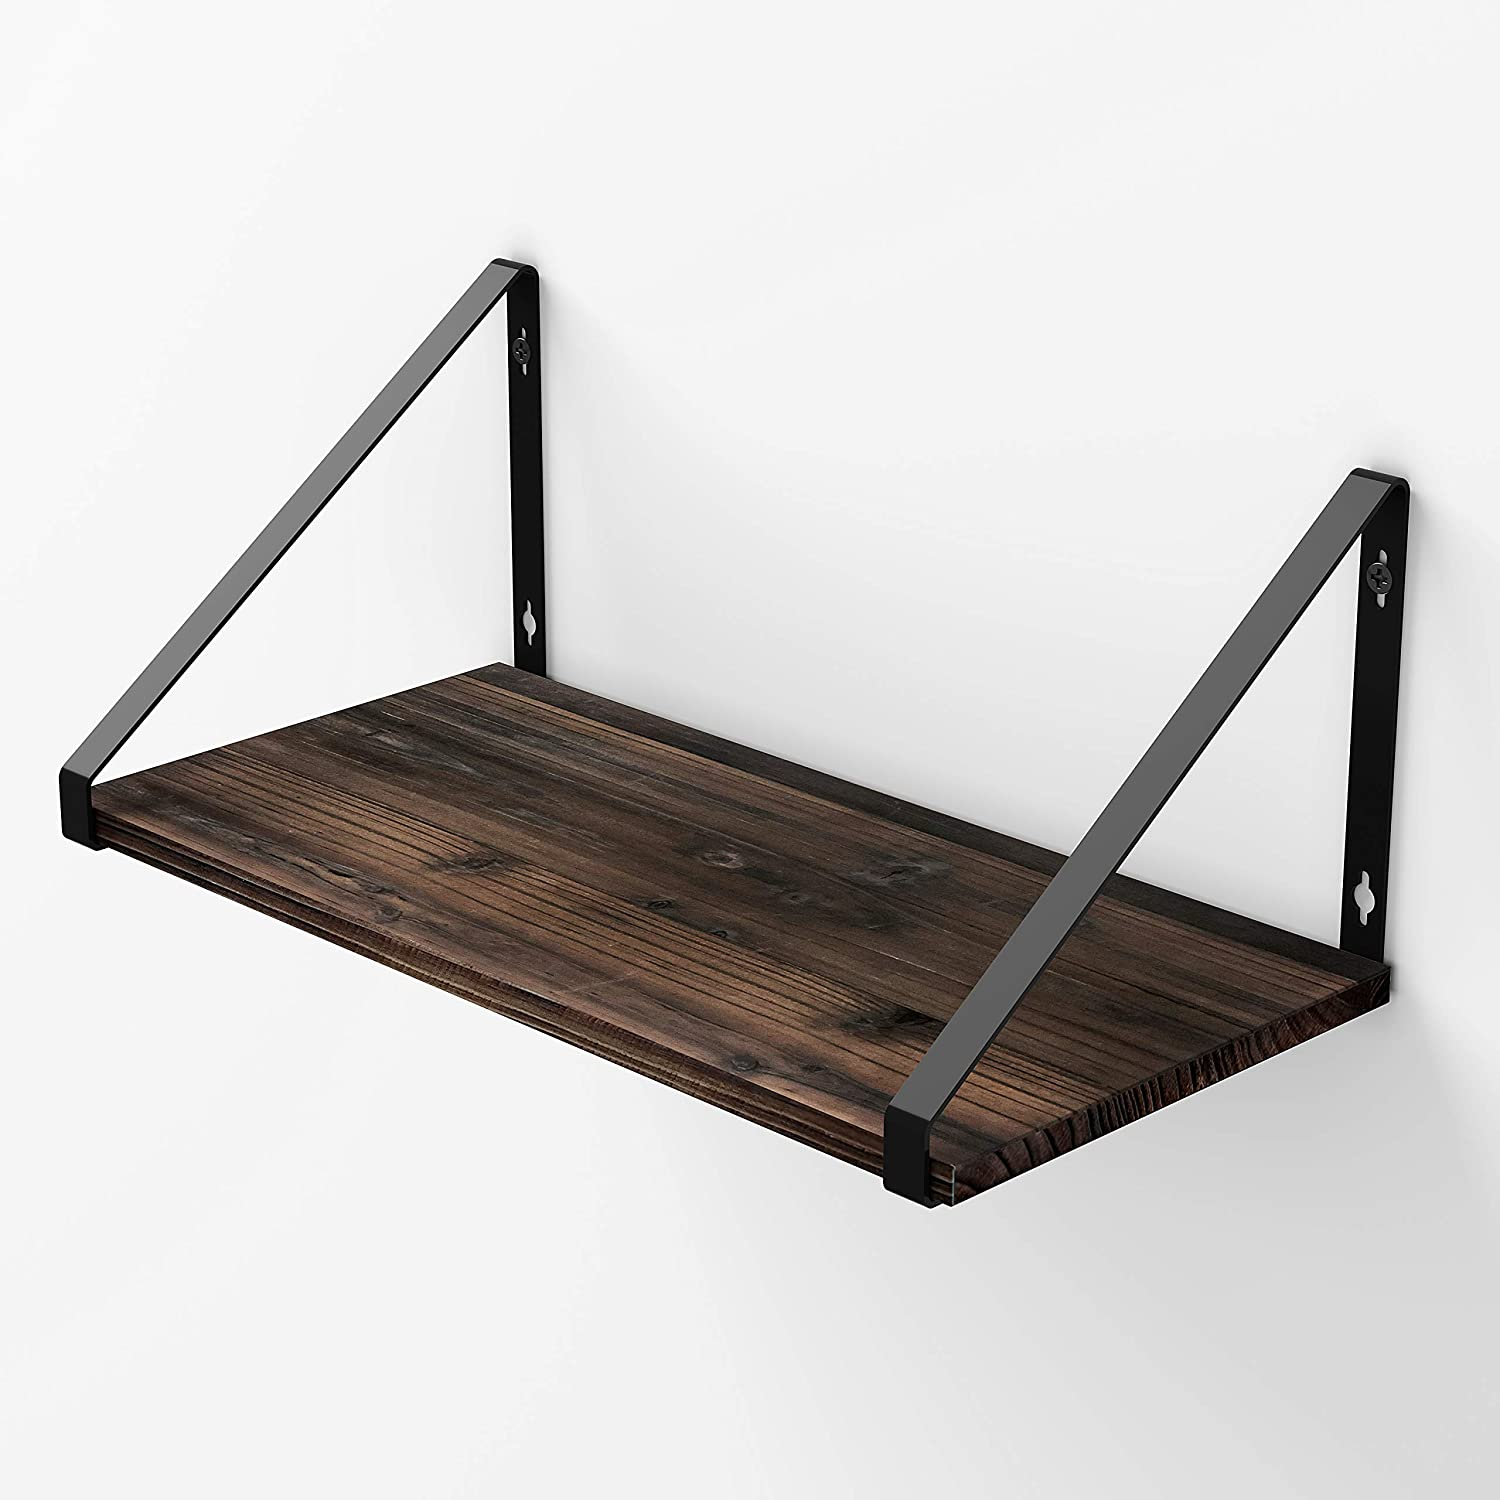 BAMEOS Floating Shelves Rustic Wood Wall Shelf Wall Mounted Shelves for Living Room, Office, and Bedroom, with Metal Bracket